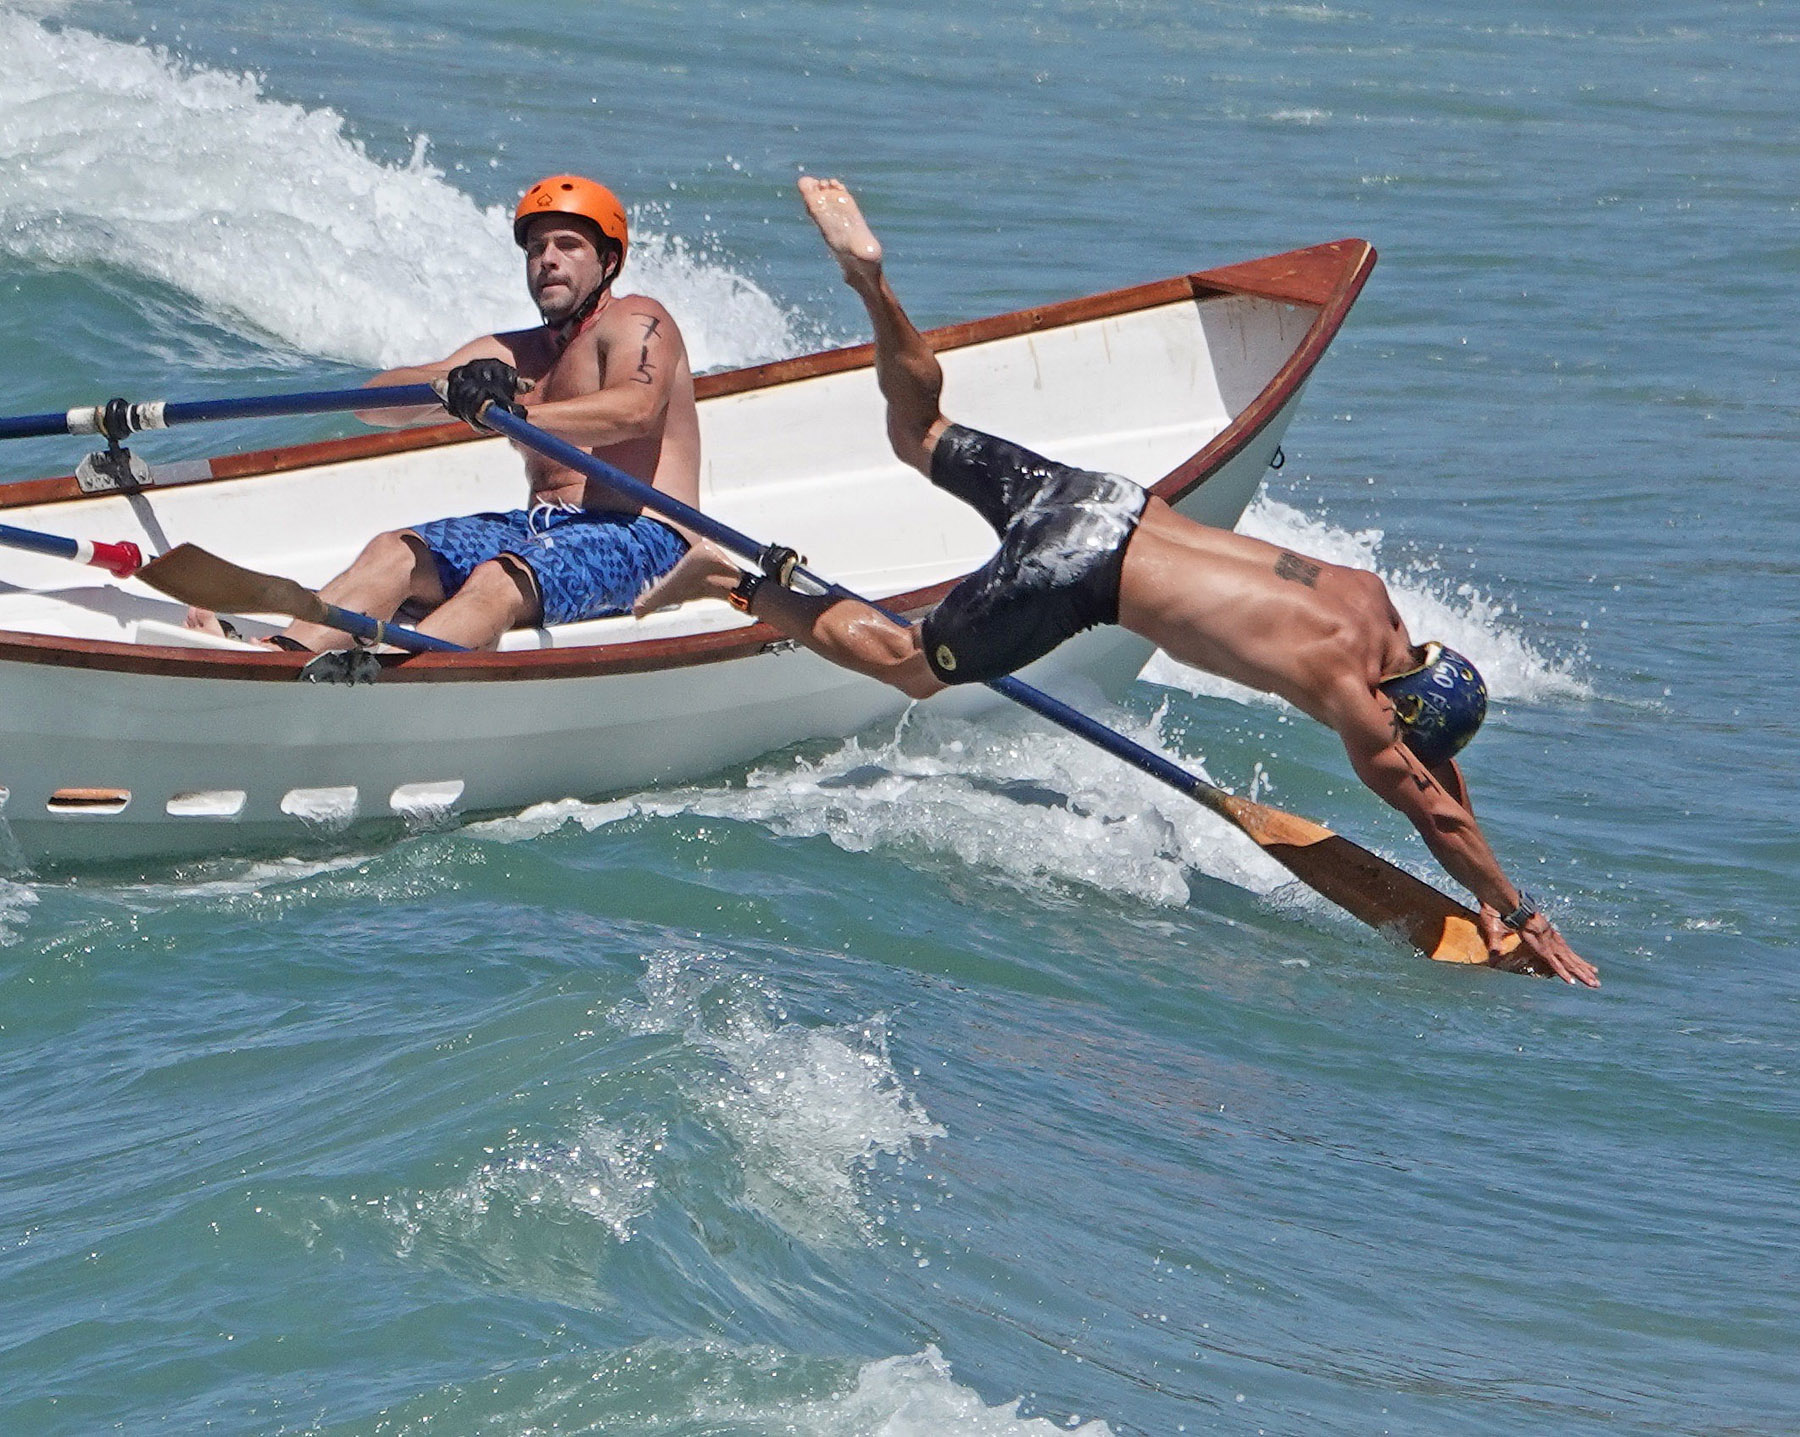 A doryman leaps forward to sprint onto shore and return to the boat swiftly so the team can row back out for the next lap of a race at the San Clemente Ocean Festival. Photo: Fred Swegles